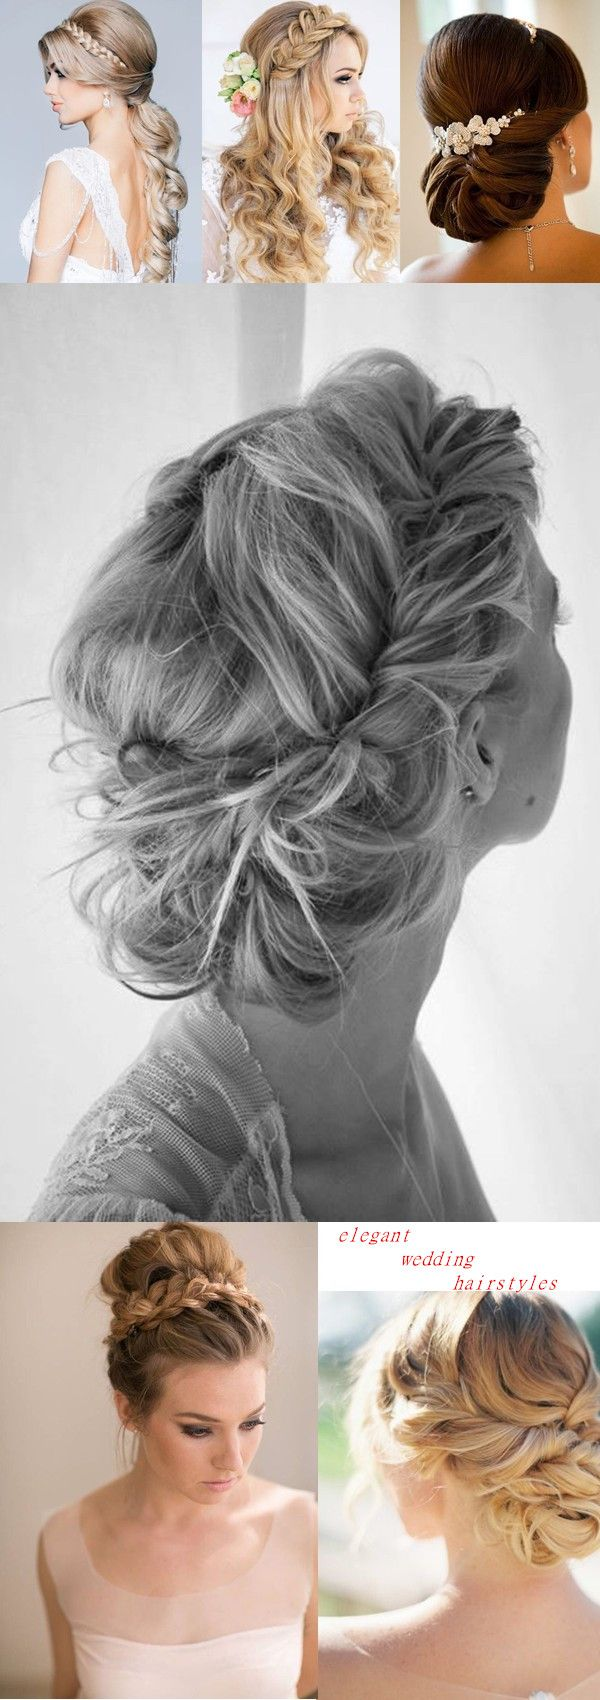 winter formal hair styles 10 ideas about winter wedding hairstyles on 9531 | 1a0e9537985759b35c9aeafef398bb85